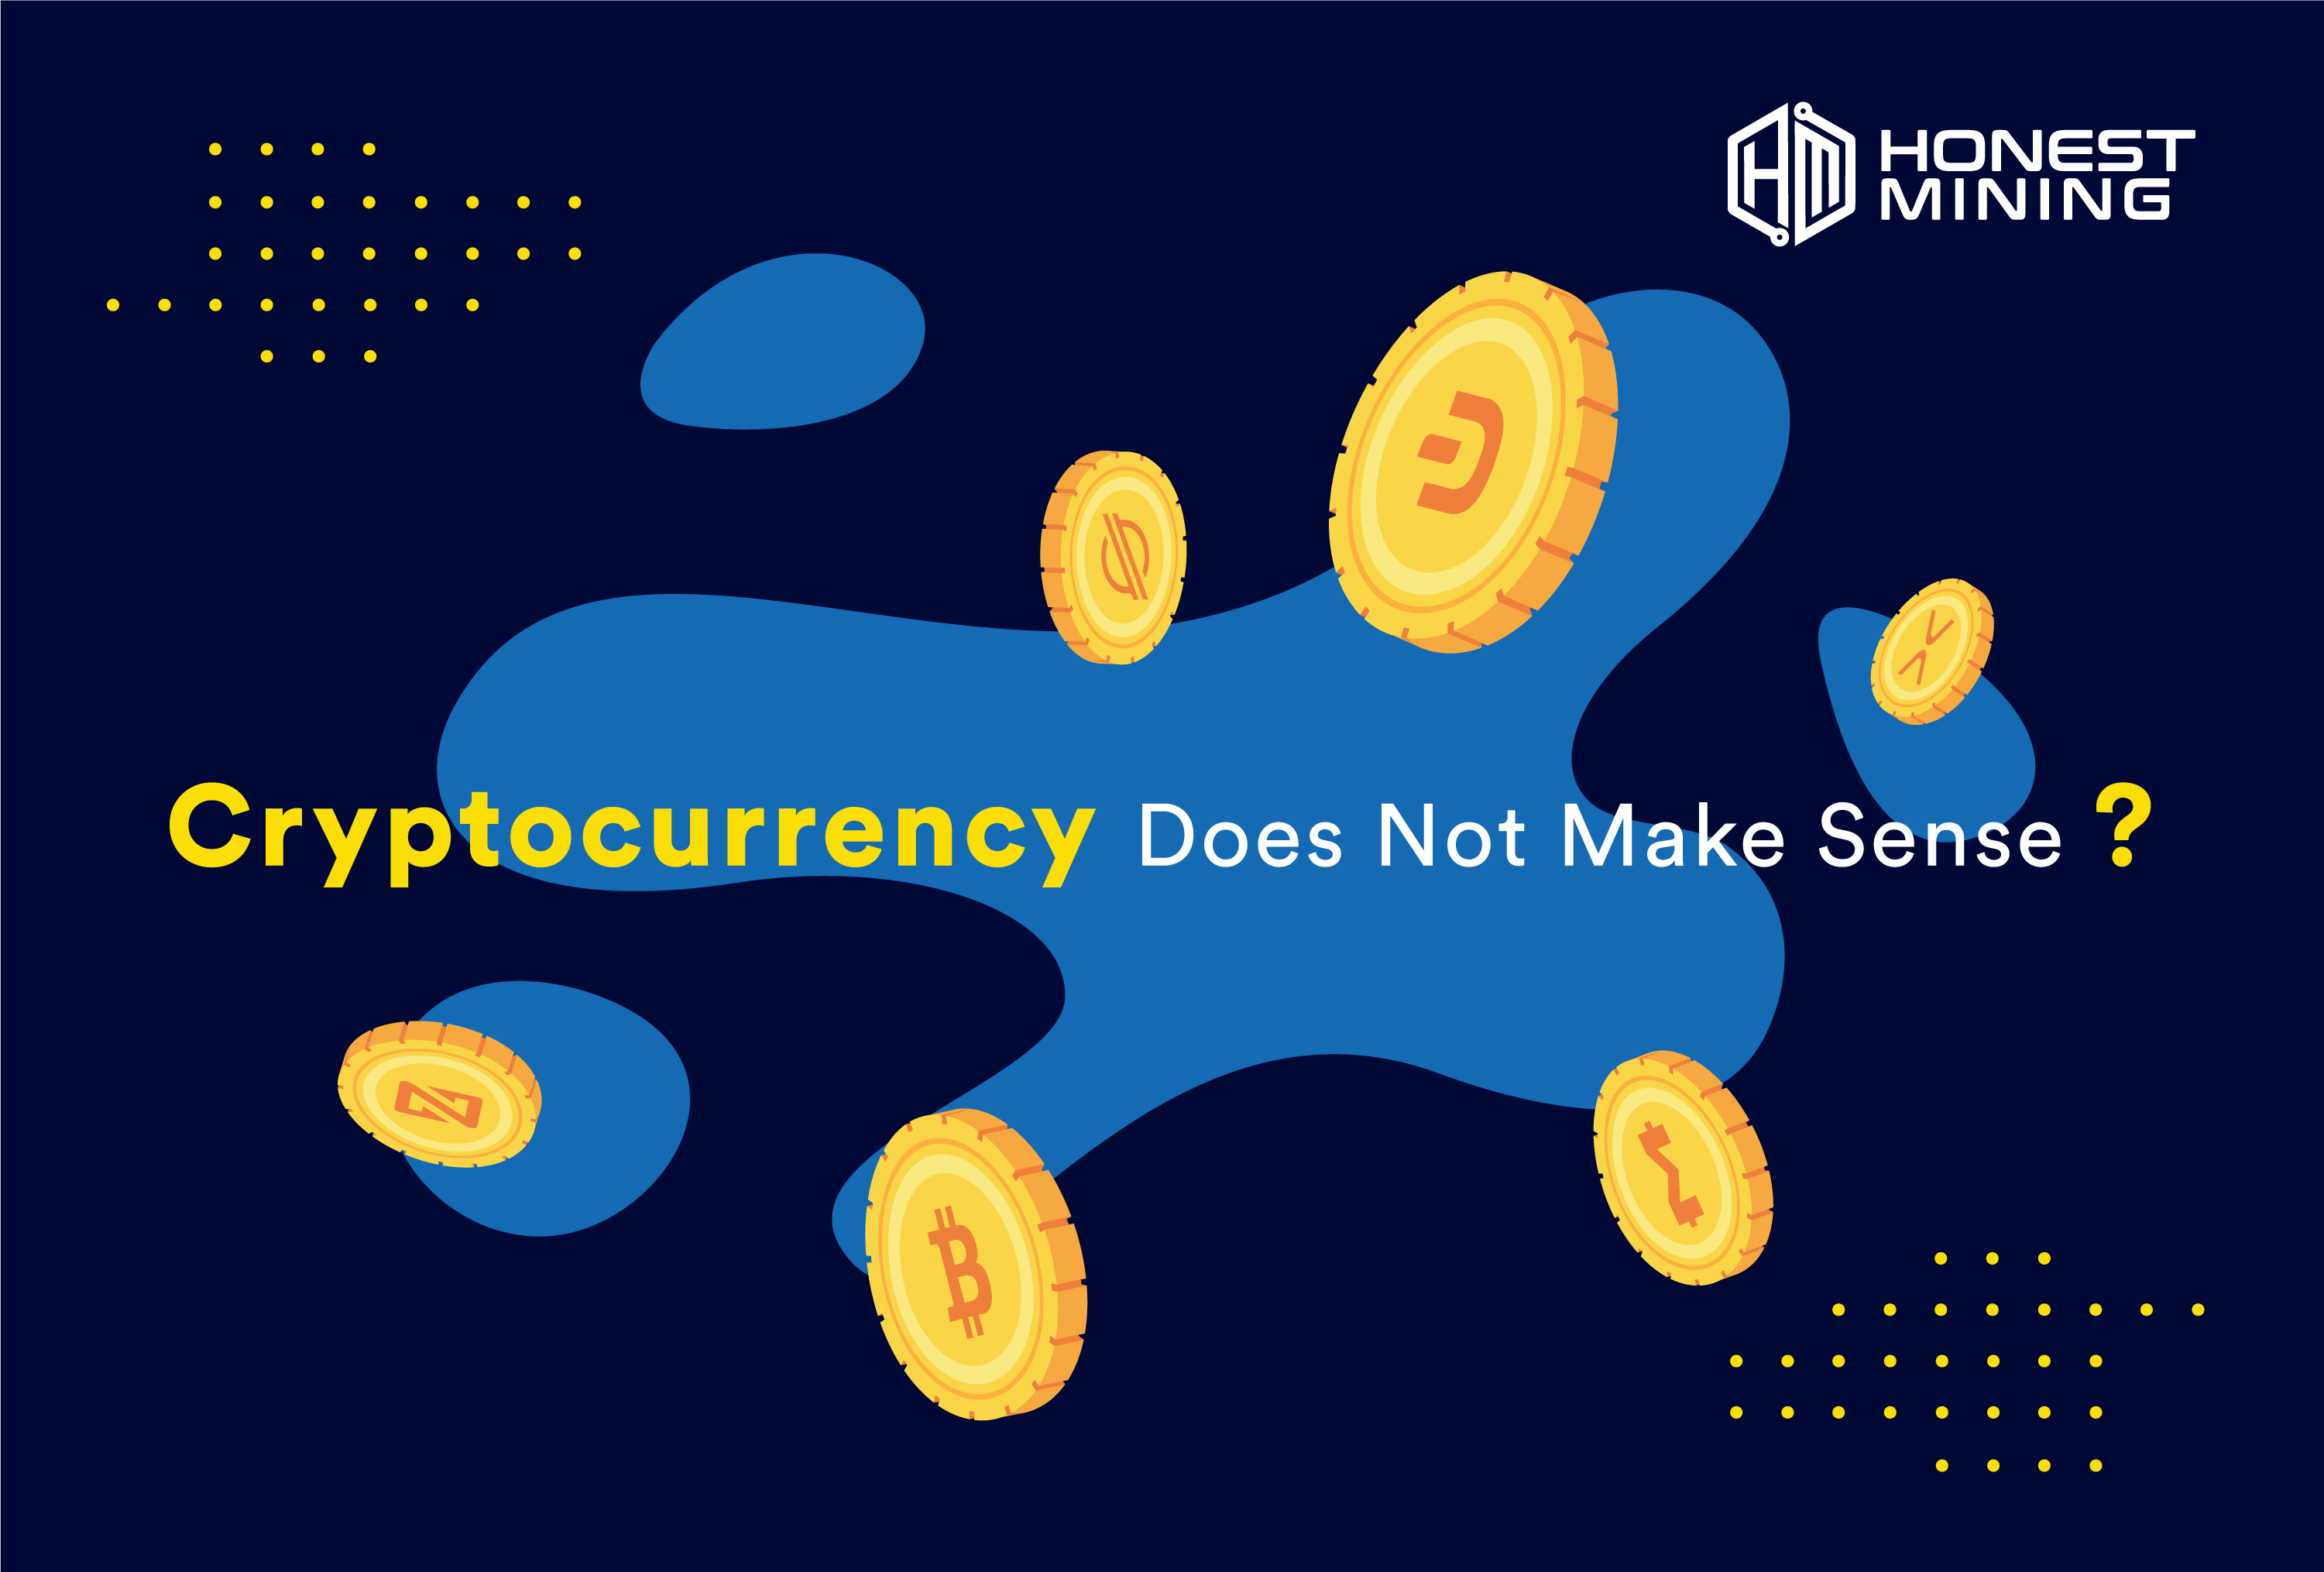 Cryptocurrency Does Not Make Sense?